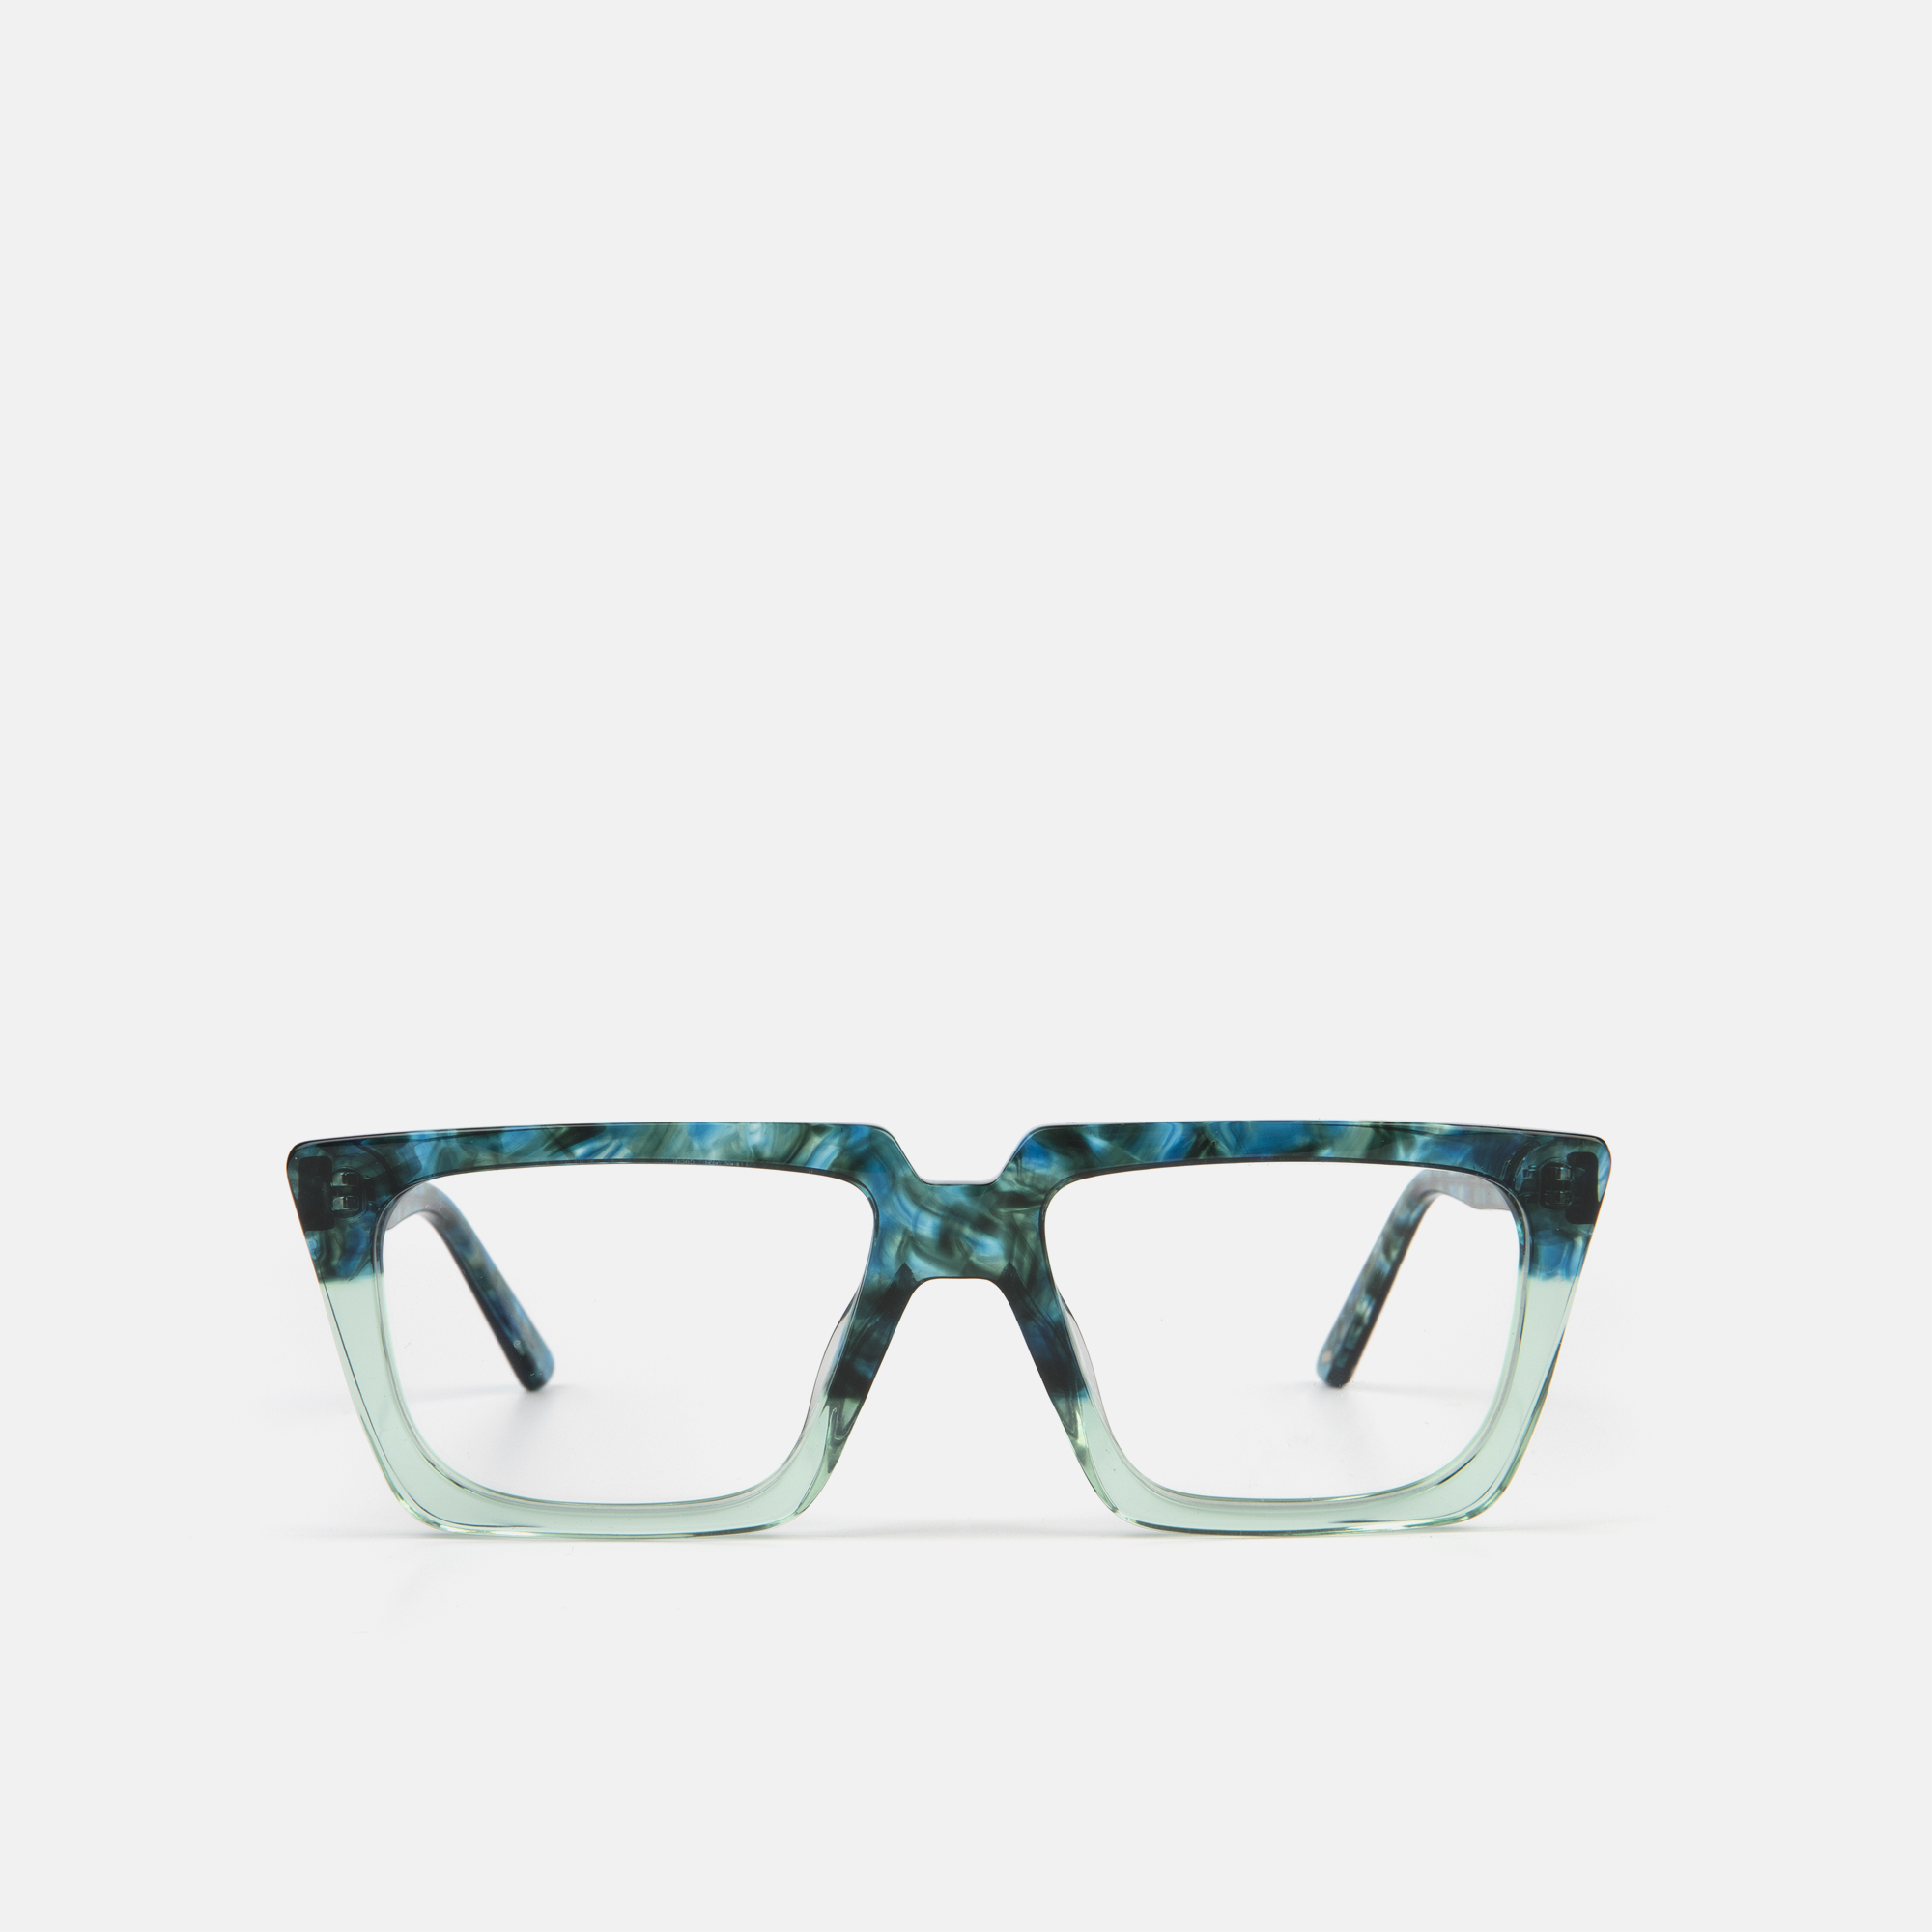 mó geek 74A A, blue/green, hi-res